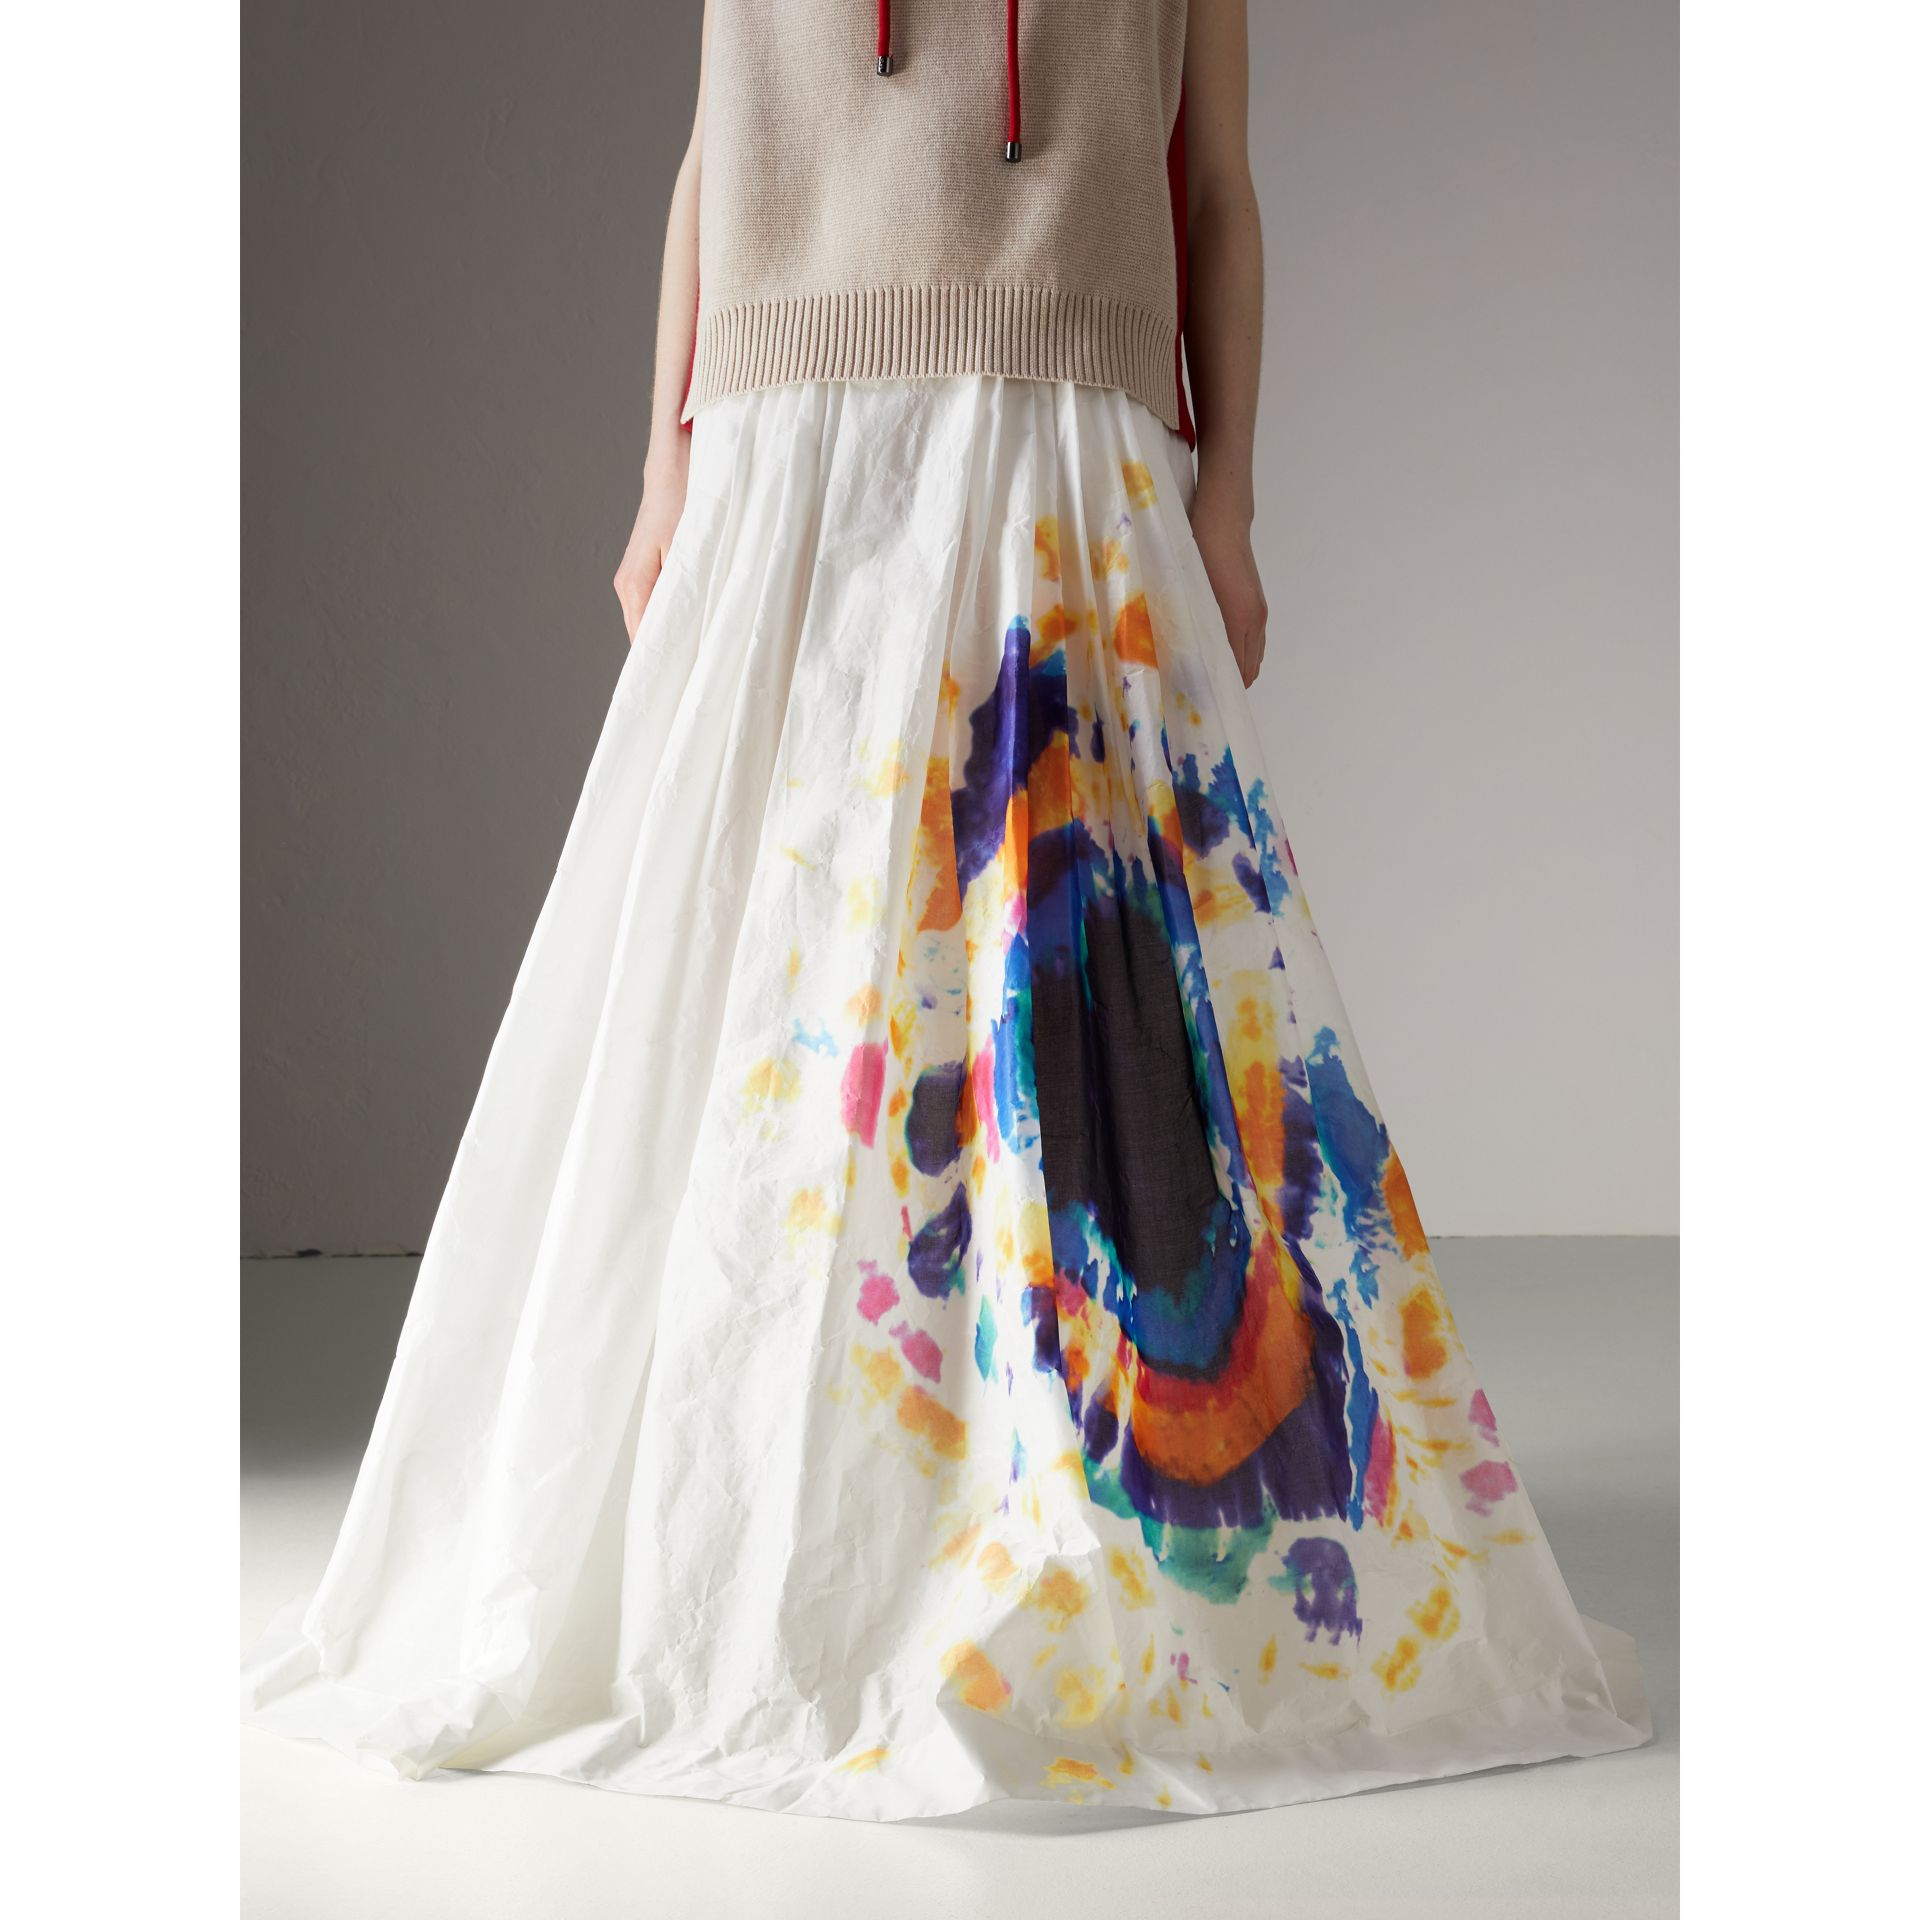 Tie-dye Print Maxi Skirt in Multi-bright Blue - Women | Burberry United States - gallery image 4